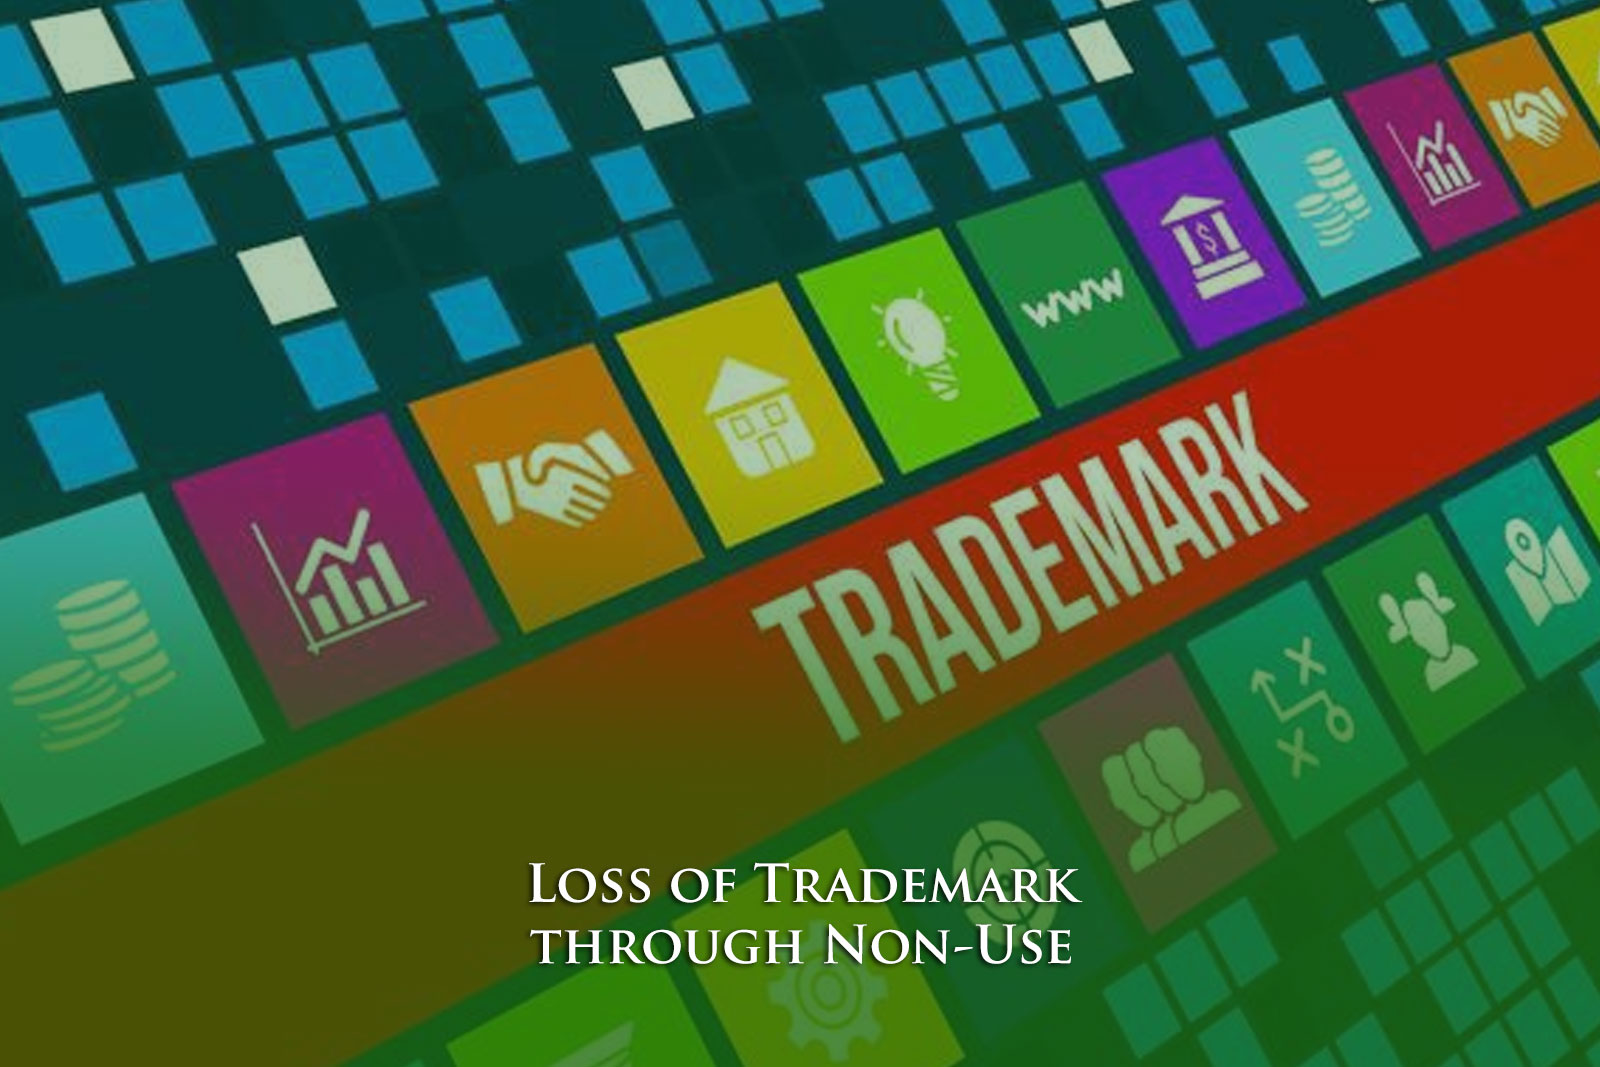 Loss of Trademark through Non-Use